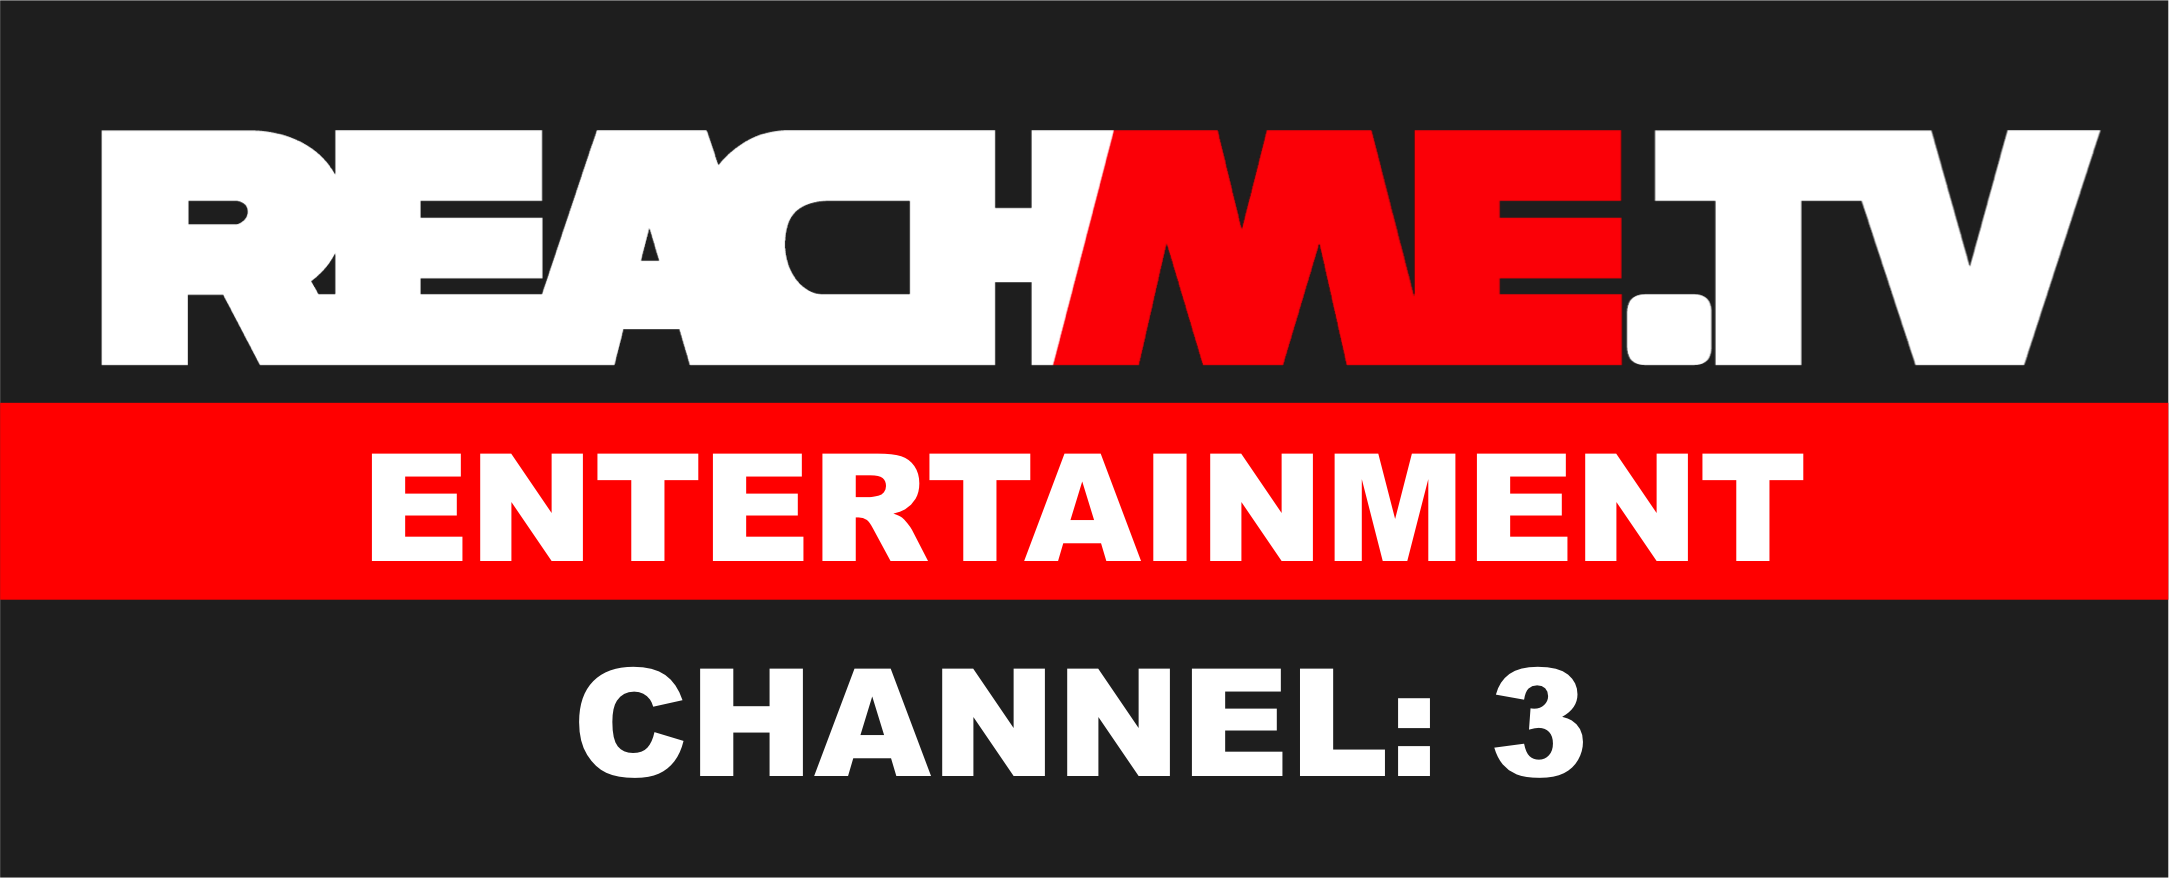 CH 3: REACHME ENTERTAINMENT